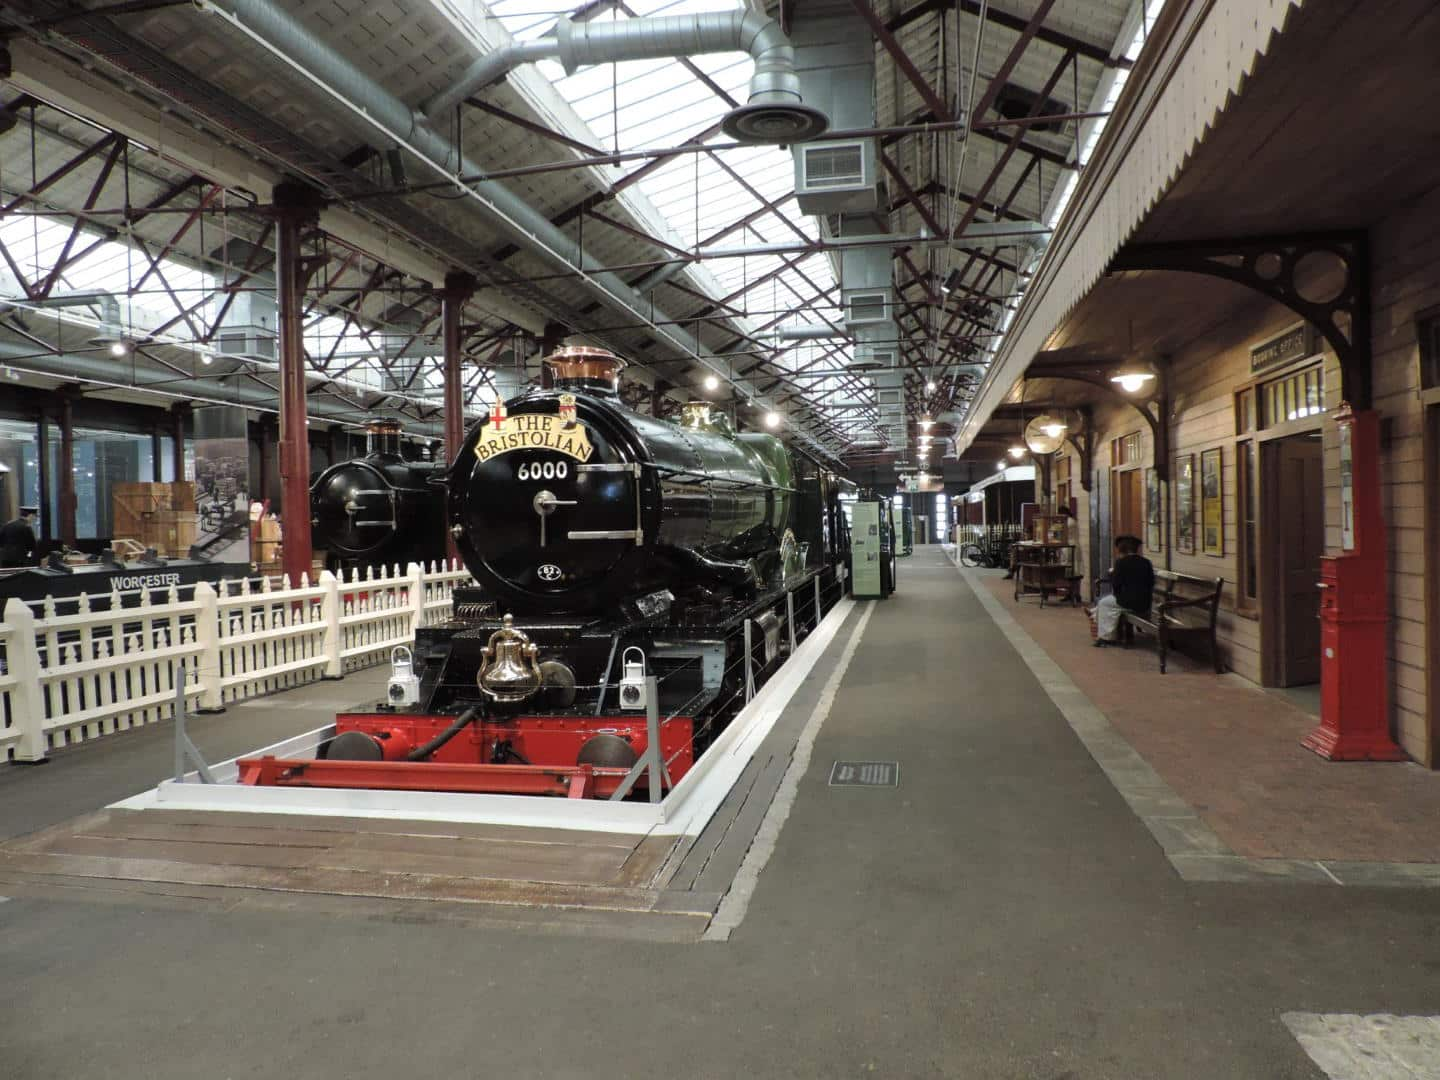 """STEAM Museum Virtual Tour - 6000 """"King George V"""" at STEAM Museum // Credit STEAM Museum Virtual Tour"""